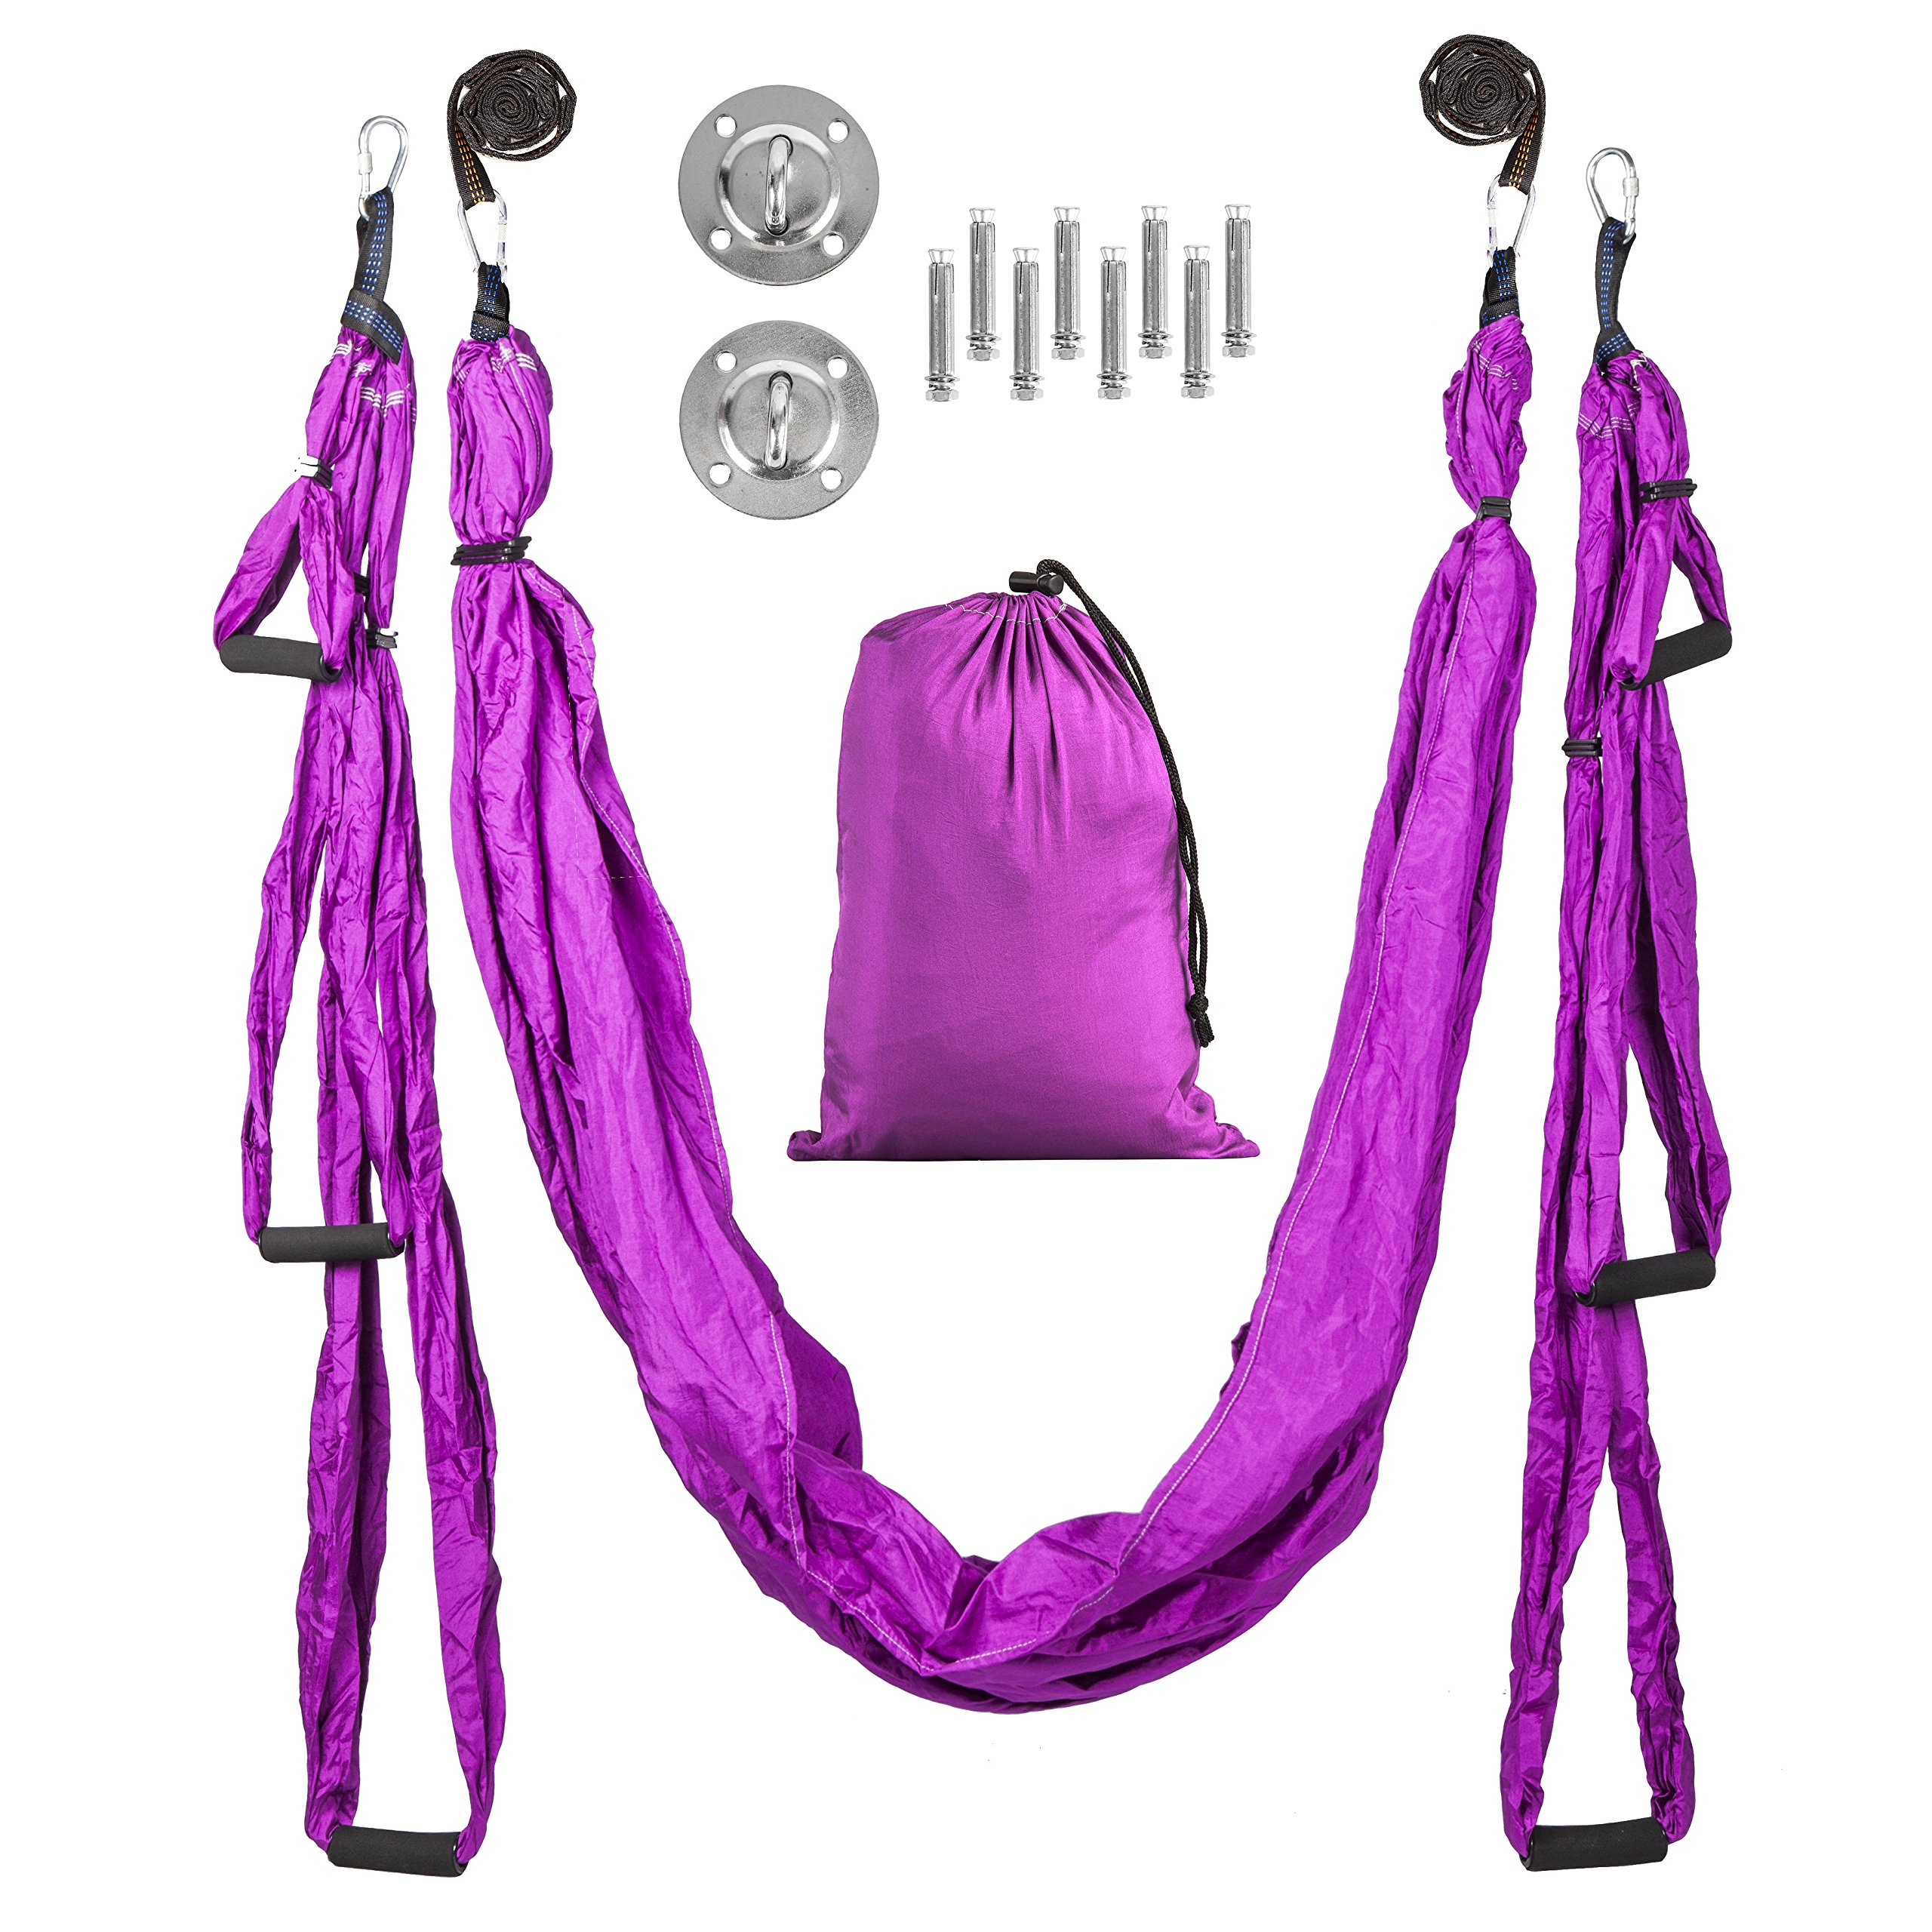 Mantrama Aerial Yoga Swing | Professional Yoga Hammock w/Sling Bag, 2 Extension Straps, Ceiling Mounting Kit | Premium Yoga Trapeze Sling For Inversion Exercises | Durable Antigravity Yoga Equipment